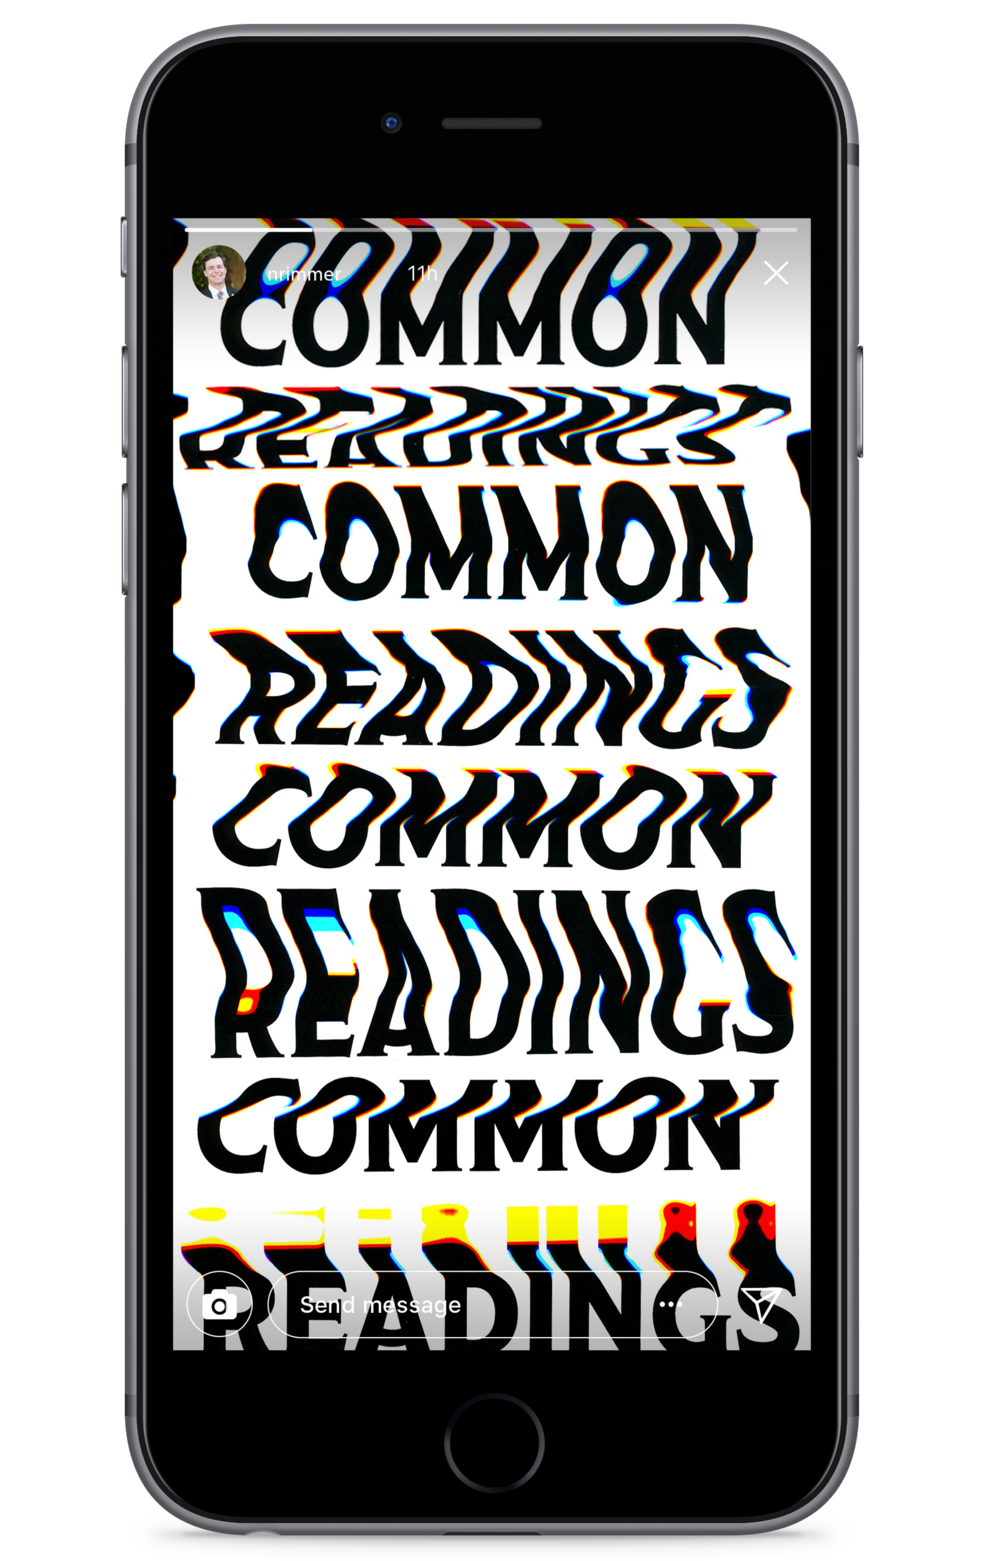 Common Readings IG Story Mockup_2.png